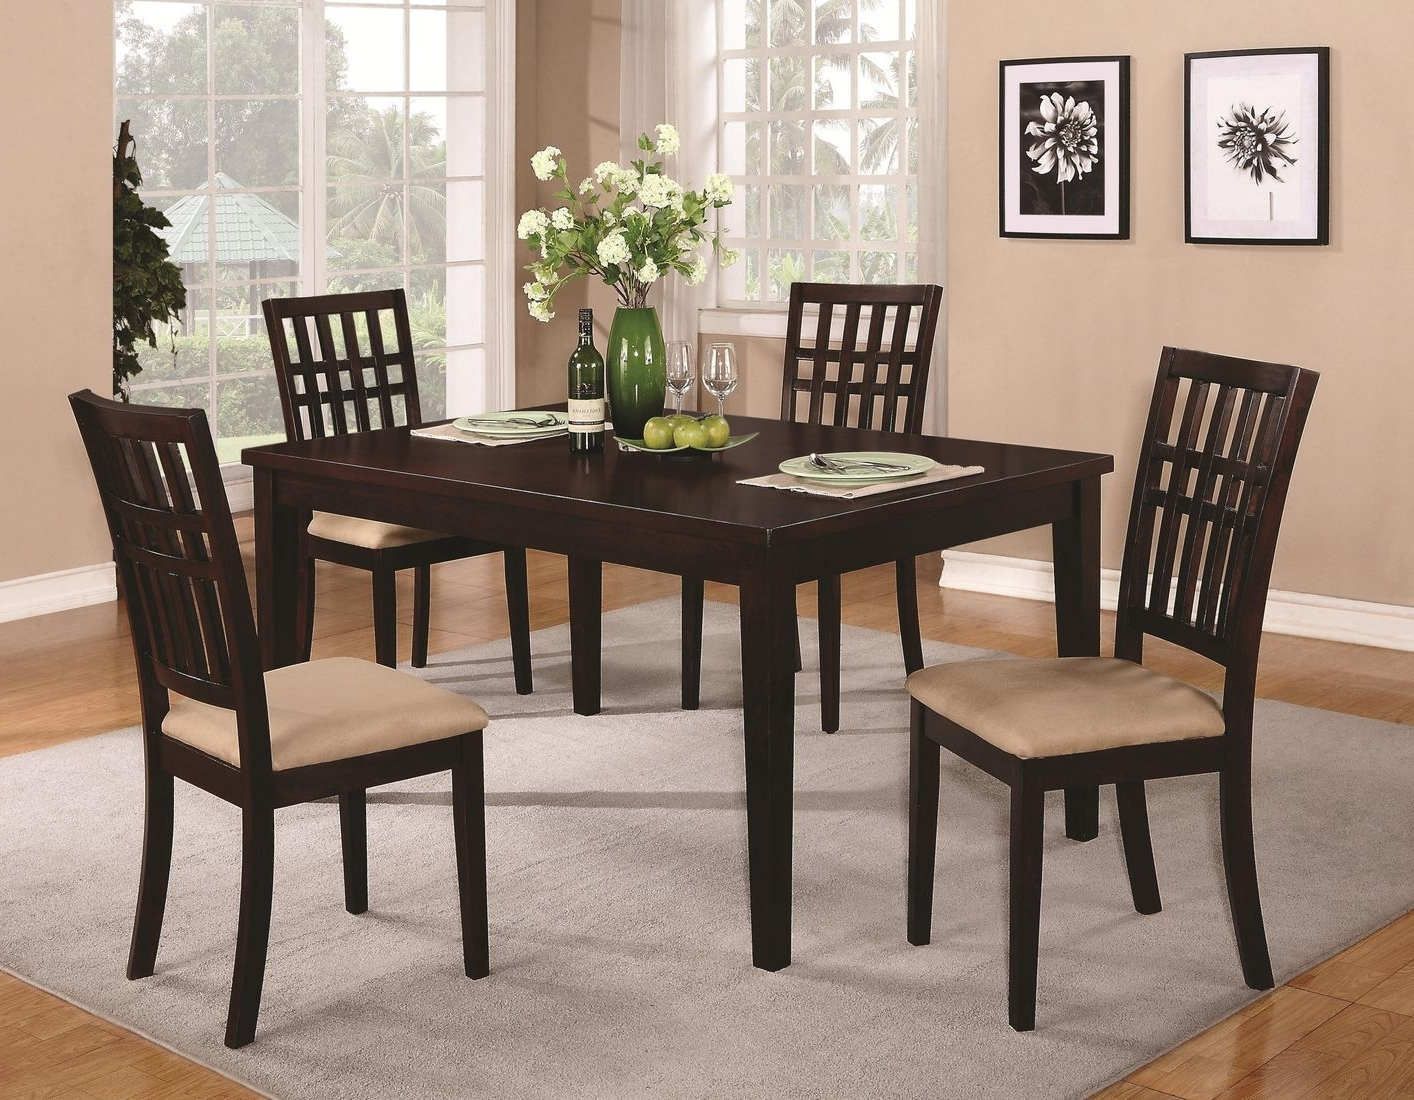 2018 Dark Wooden Dining Tables Pertaining To Brandt Dark Cherry Wood Dining Table – Steal A Sofa Furniture Outlet (View 2 of 25)